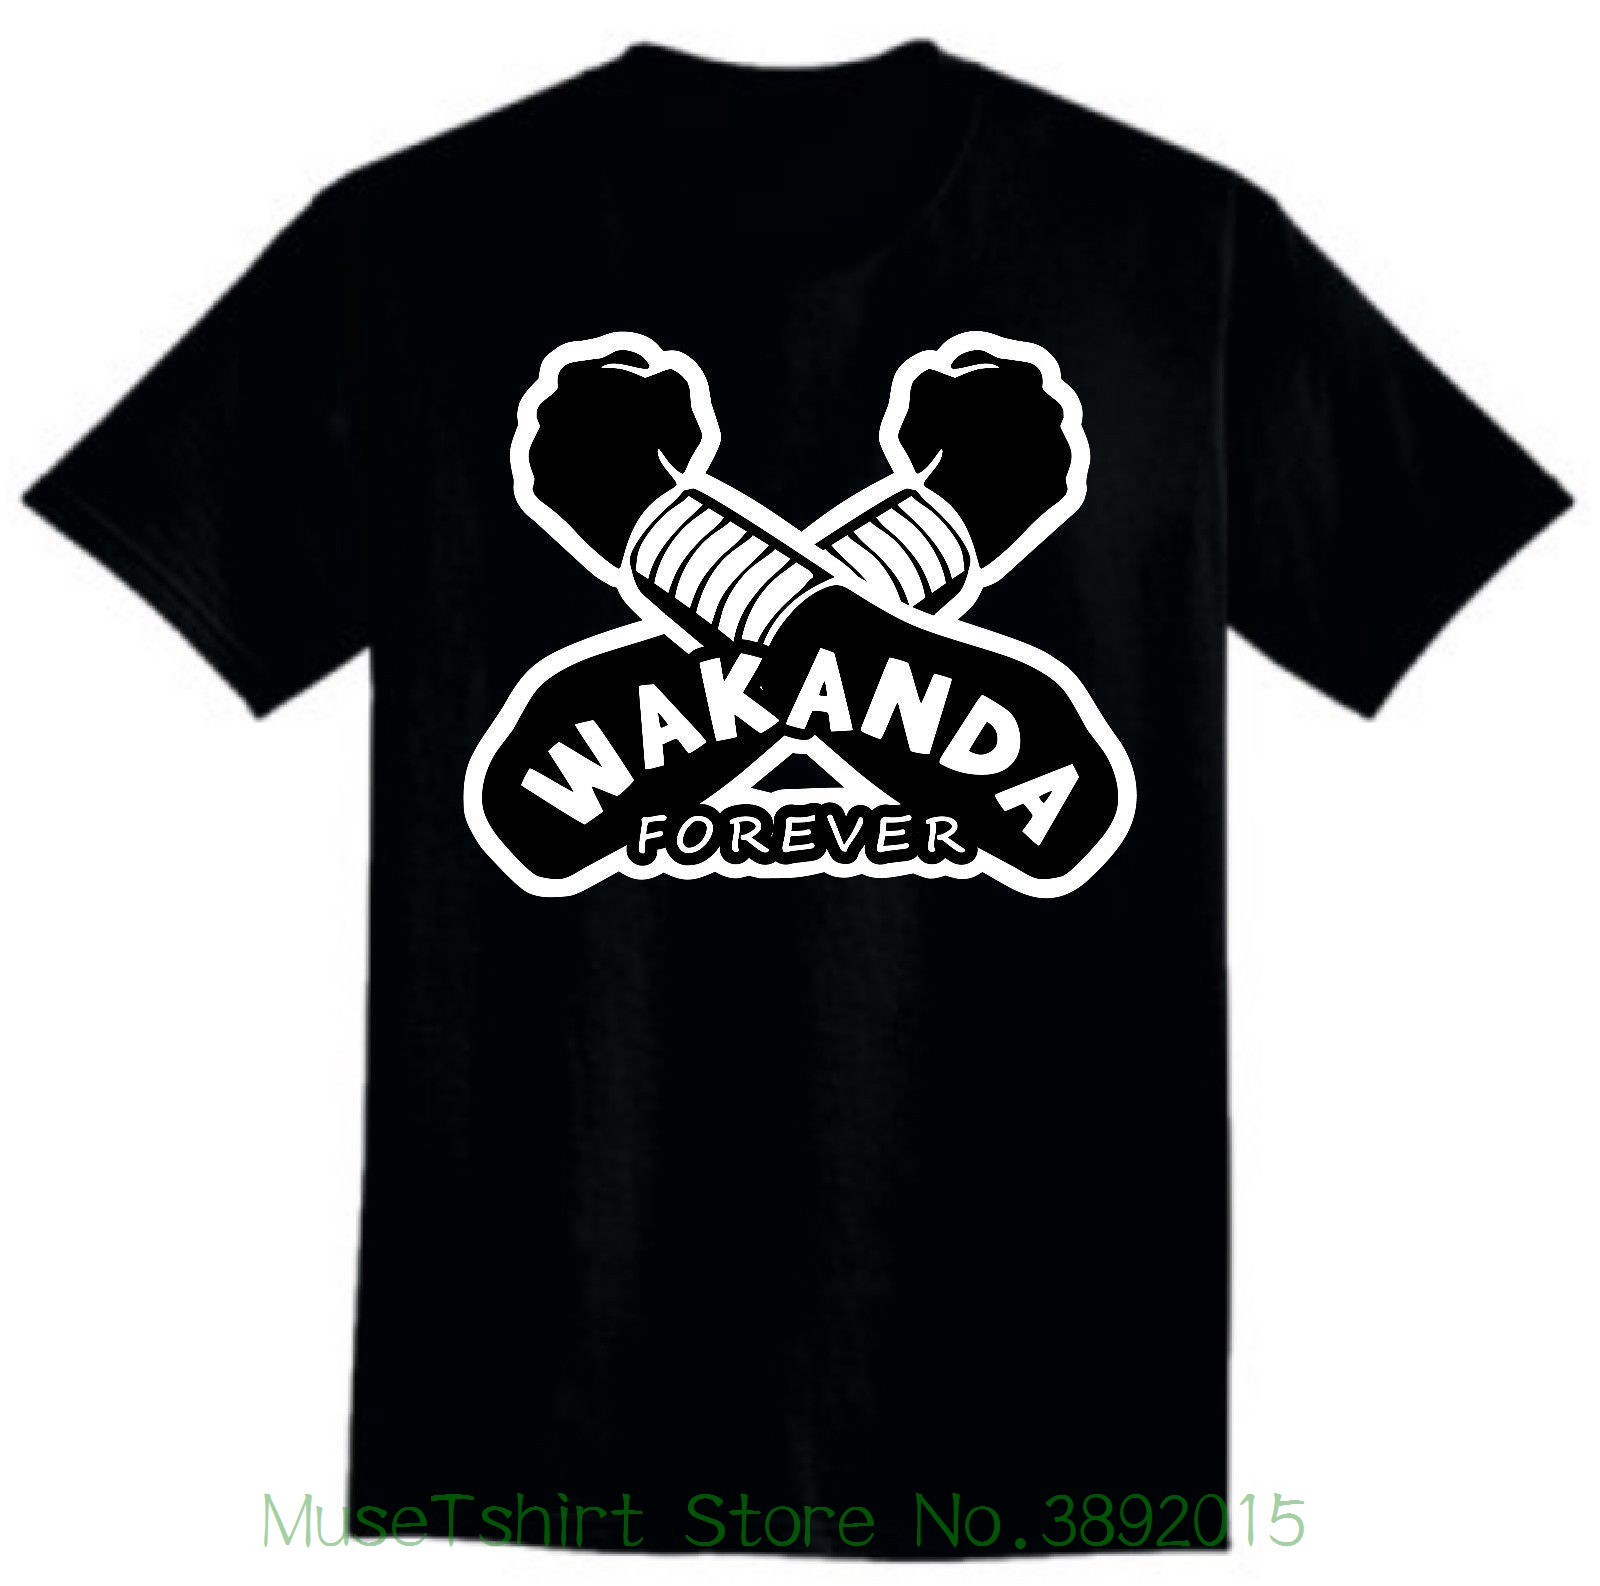 Straight Outta Wakanda T-shirt Wakanda , Black Panther Shirt Men Women Kid Shirt Men New ...